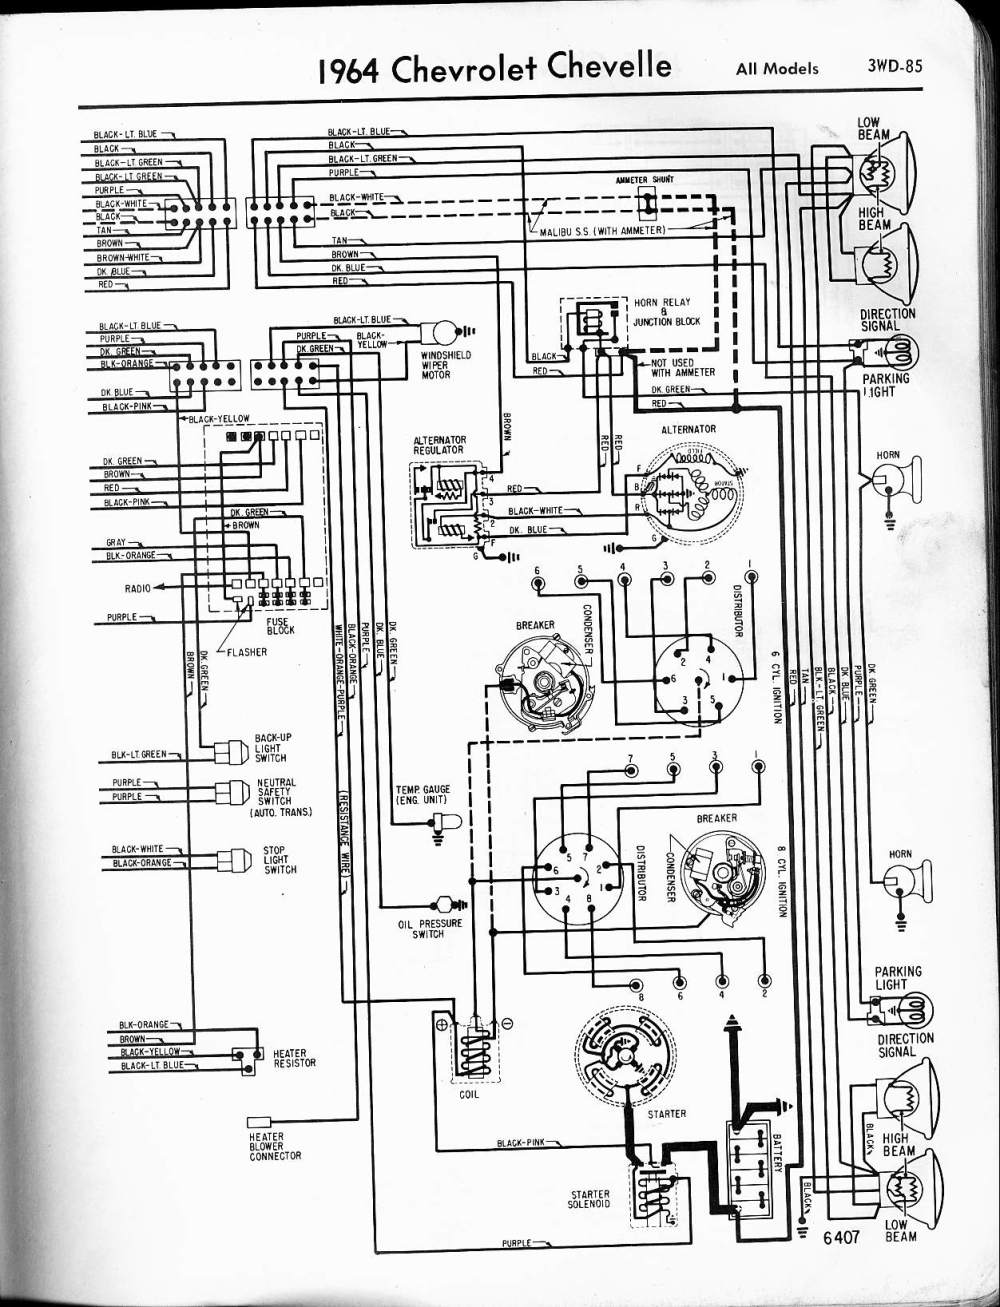 medium resolution of 65 corvette wiring diagram wiring diagram1999 chevrolet wiring diagram wiring diagram1999 chevrolet corvette system wiring diagrams